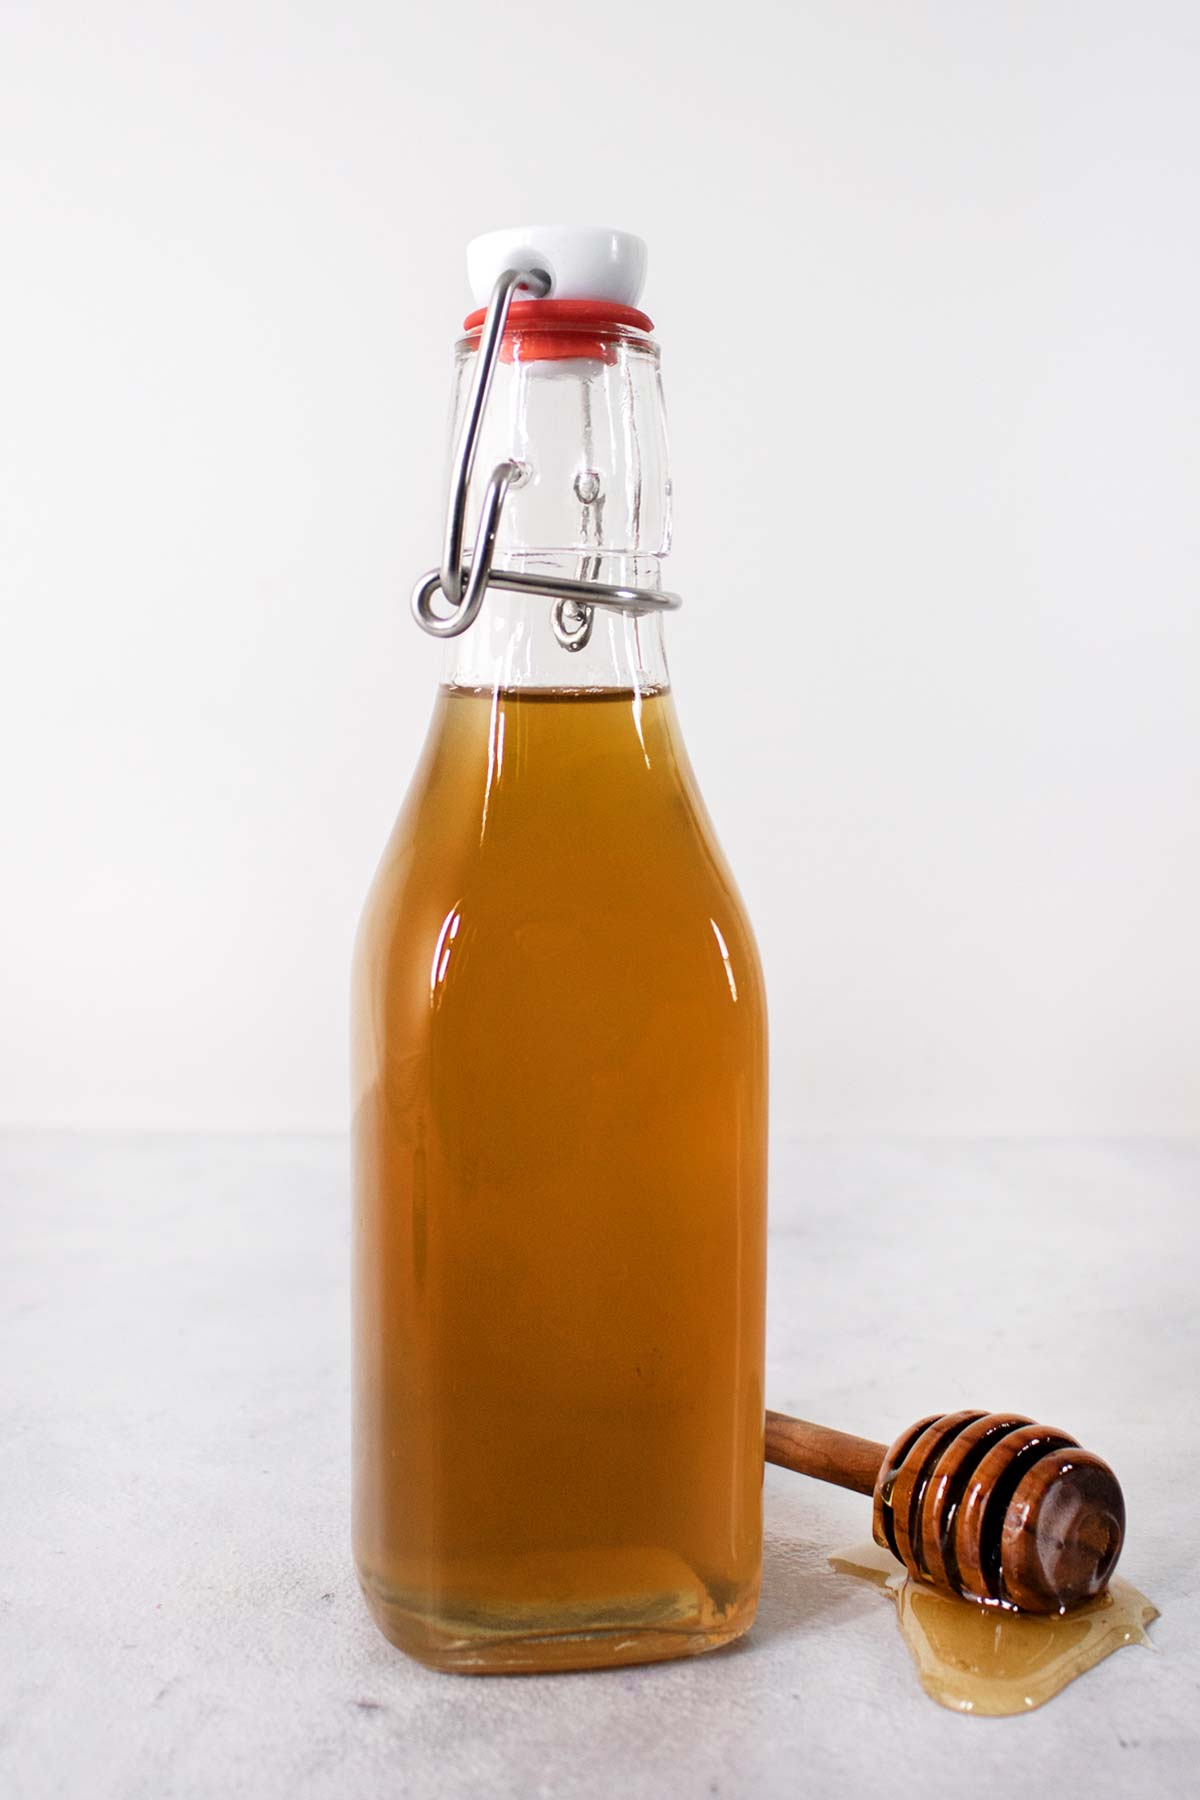 Honey syrup in a glass bottle.